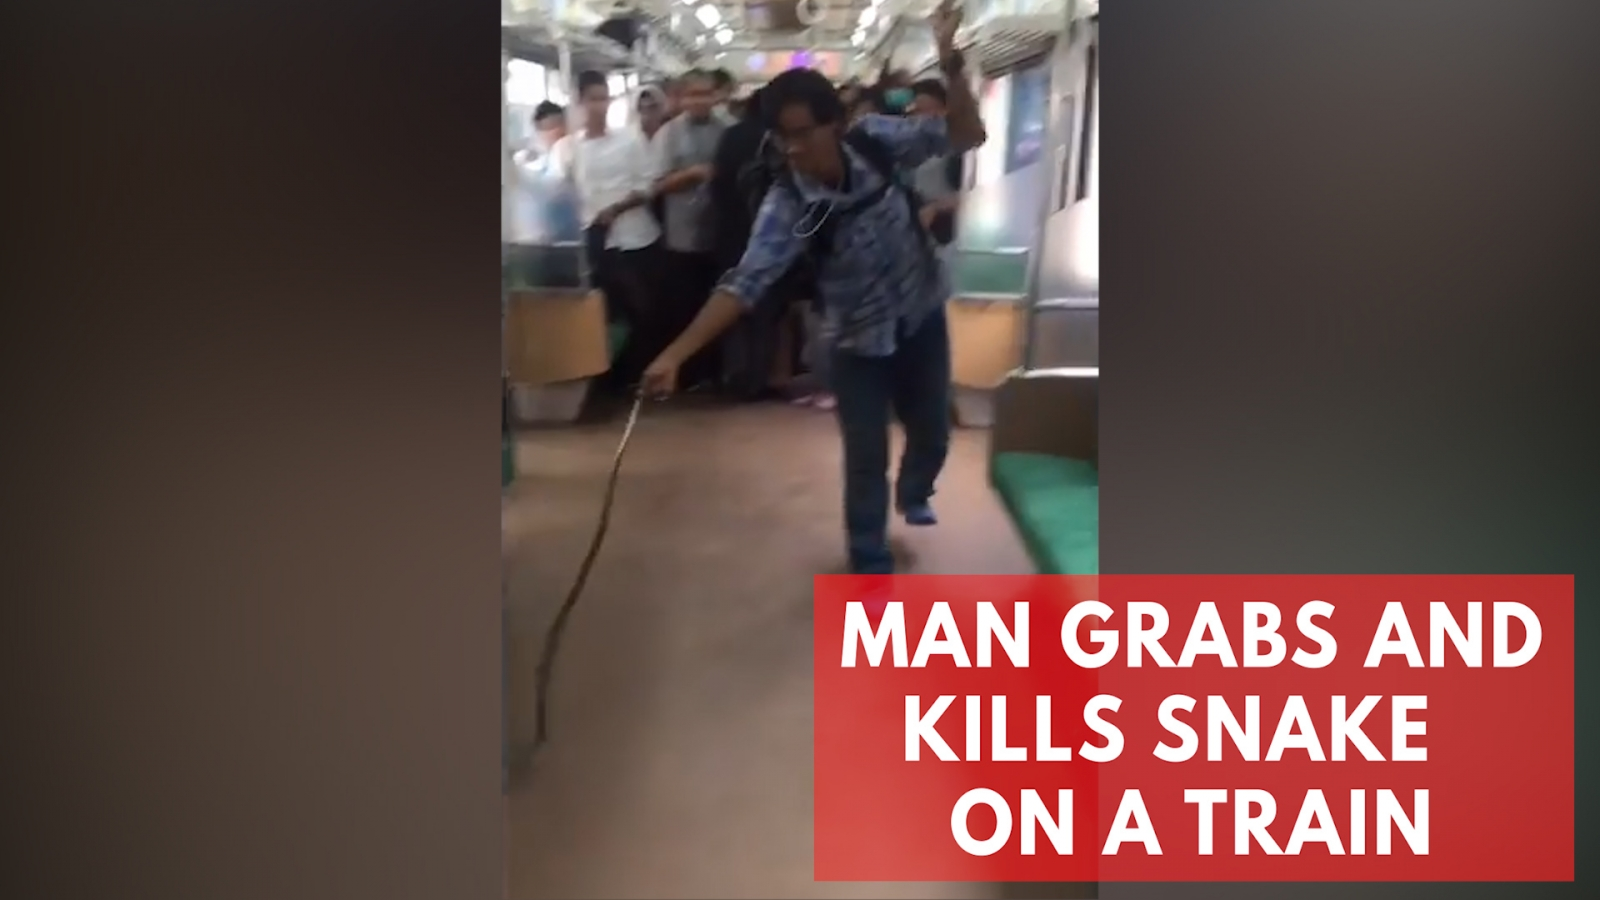 man-grabs-and-kills-snake-on-a-train-with-his-bare-hands